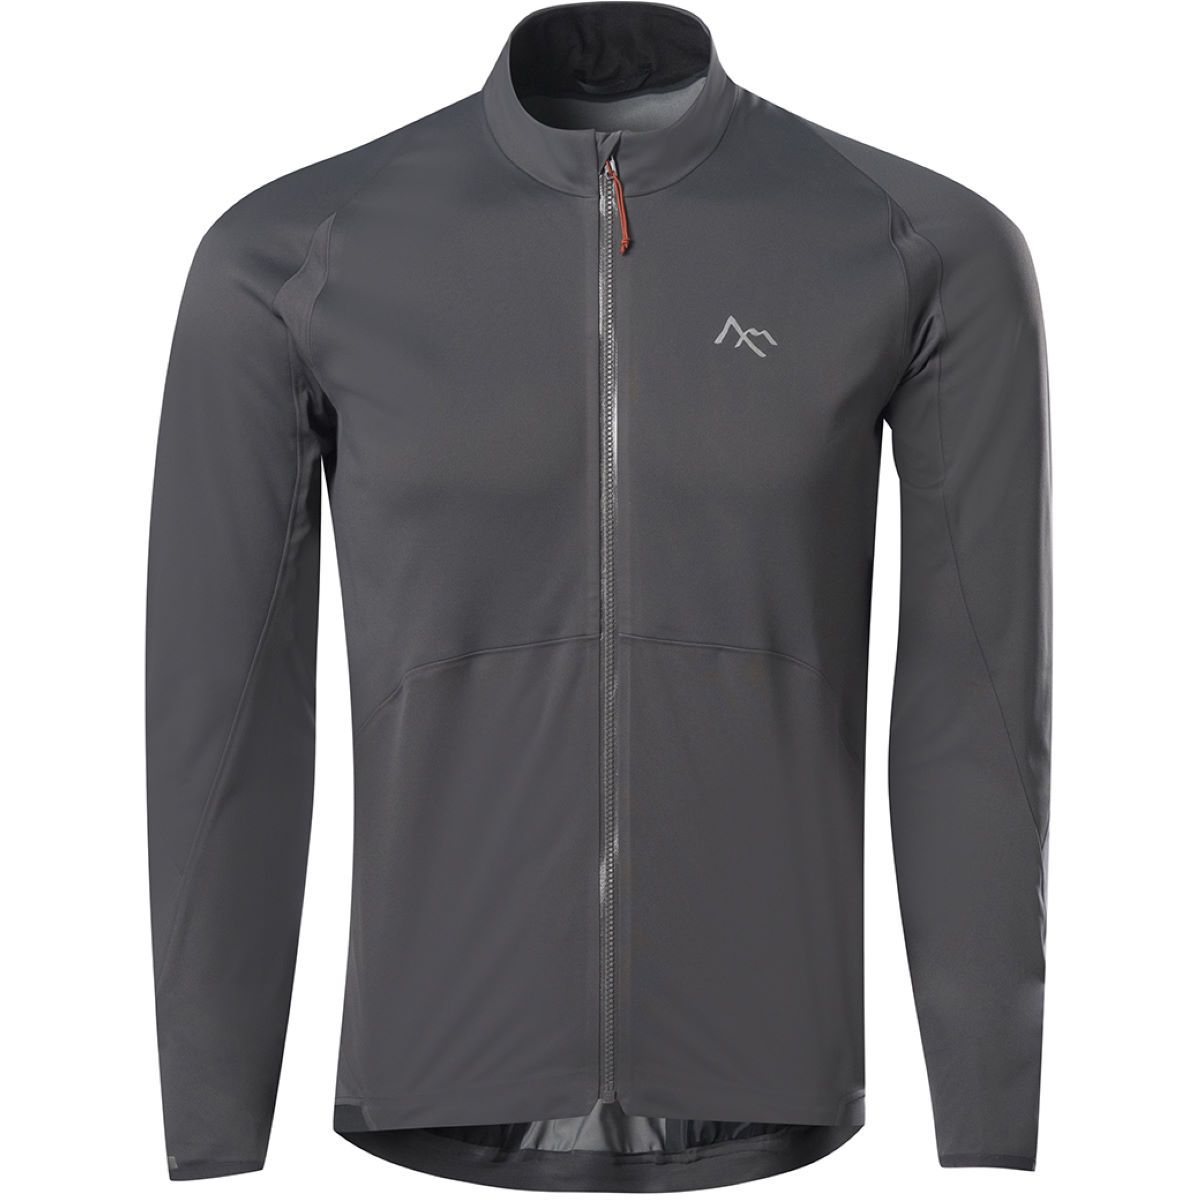 Veste 7Mesh Strategy Windstopper - M Ash Coupe-vents vélo